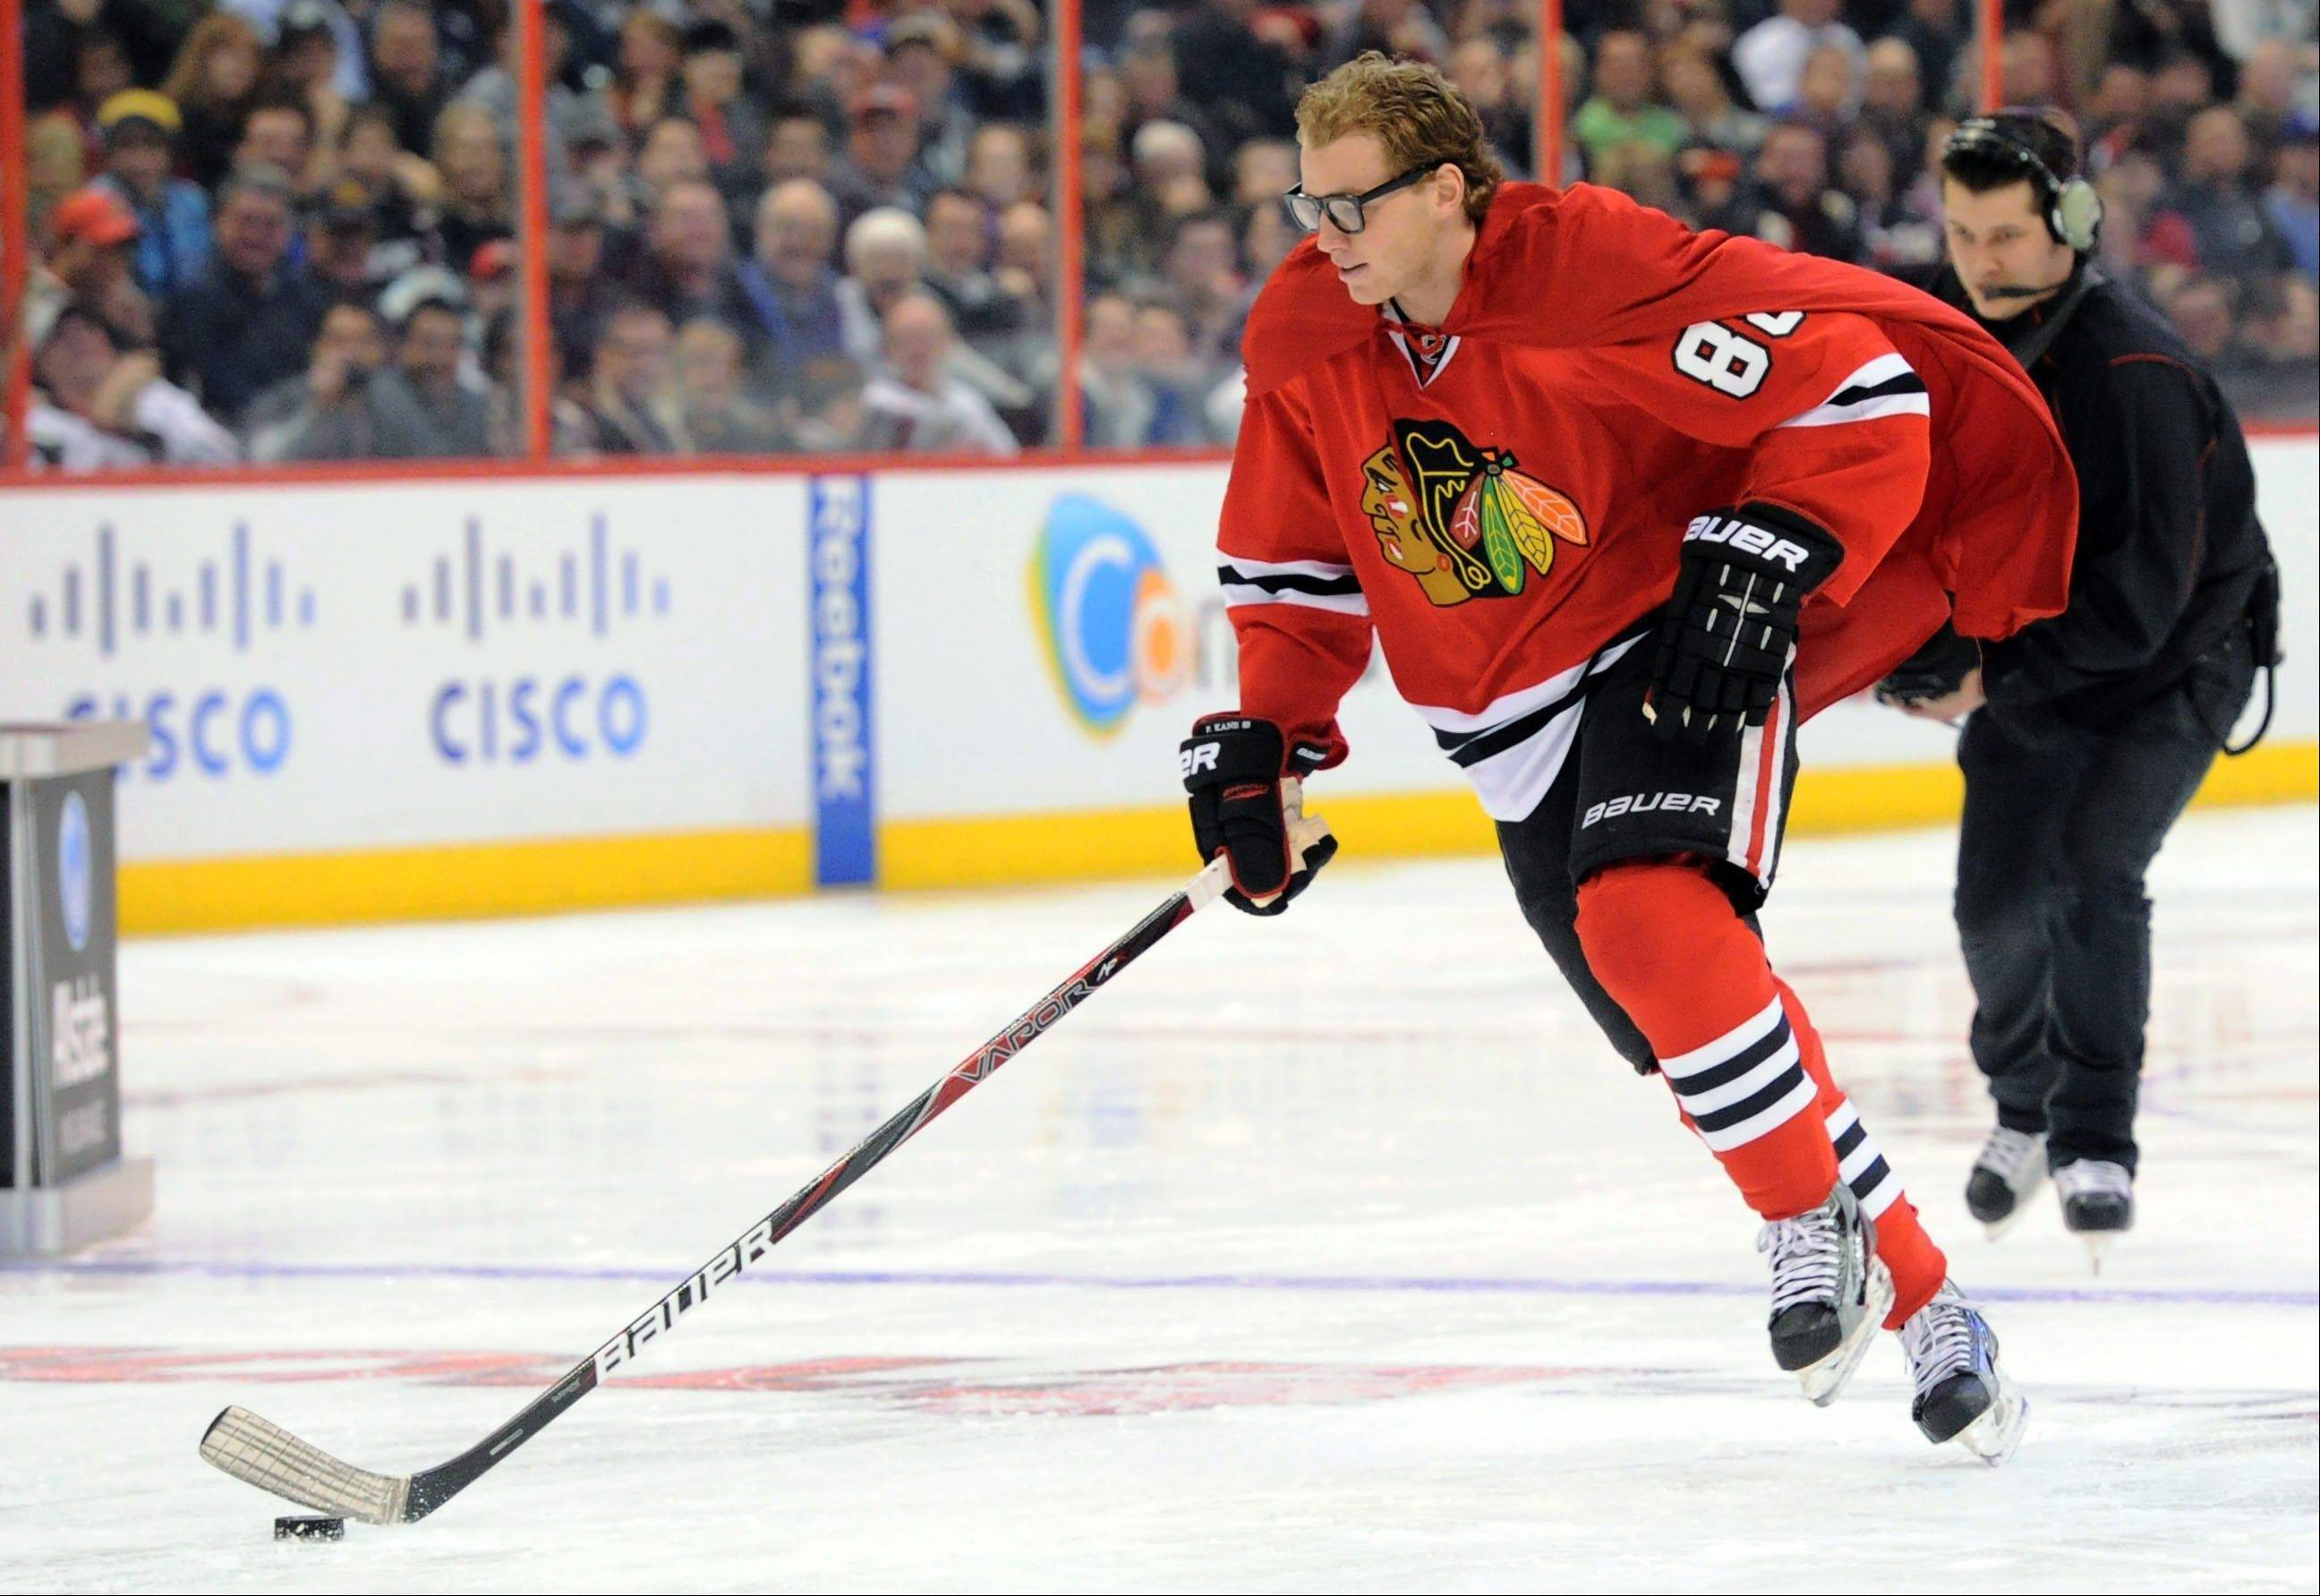 Patrick Kane of the Chicago Blackhawks had a lot of fun wearing a cape atthe NHL All-Star skills hockey competition in Ottawa, Ontario, last January. On Friday, the league canceled the 2013 game in Columbus.